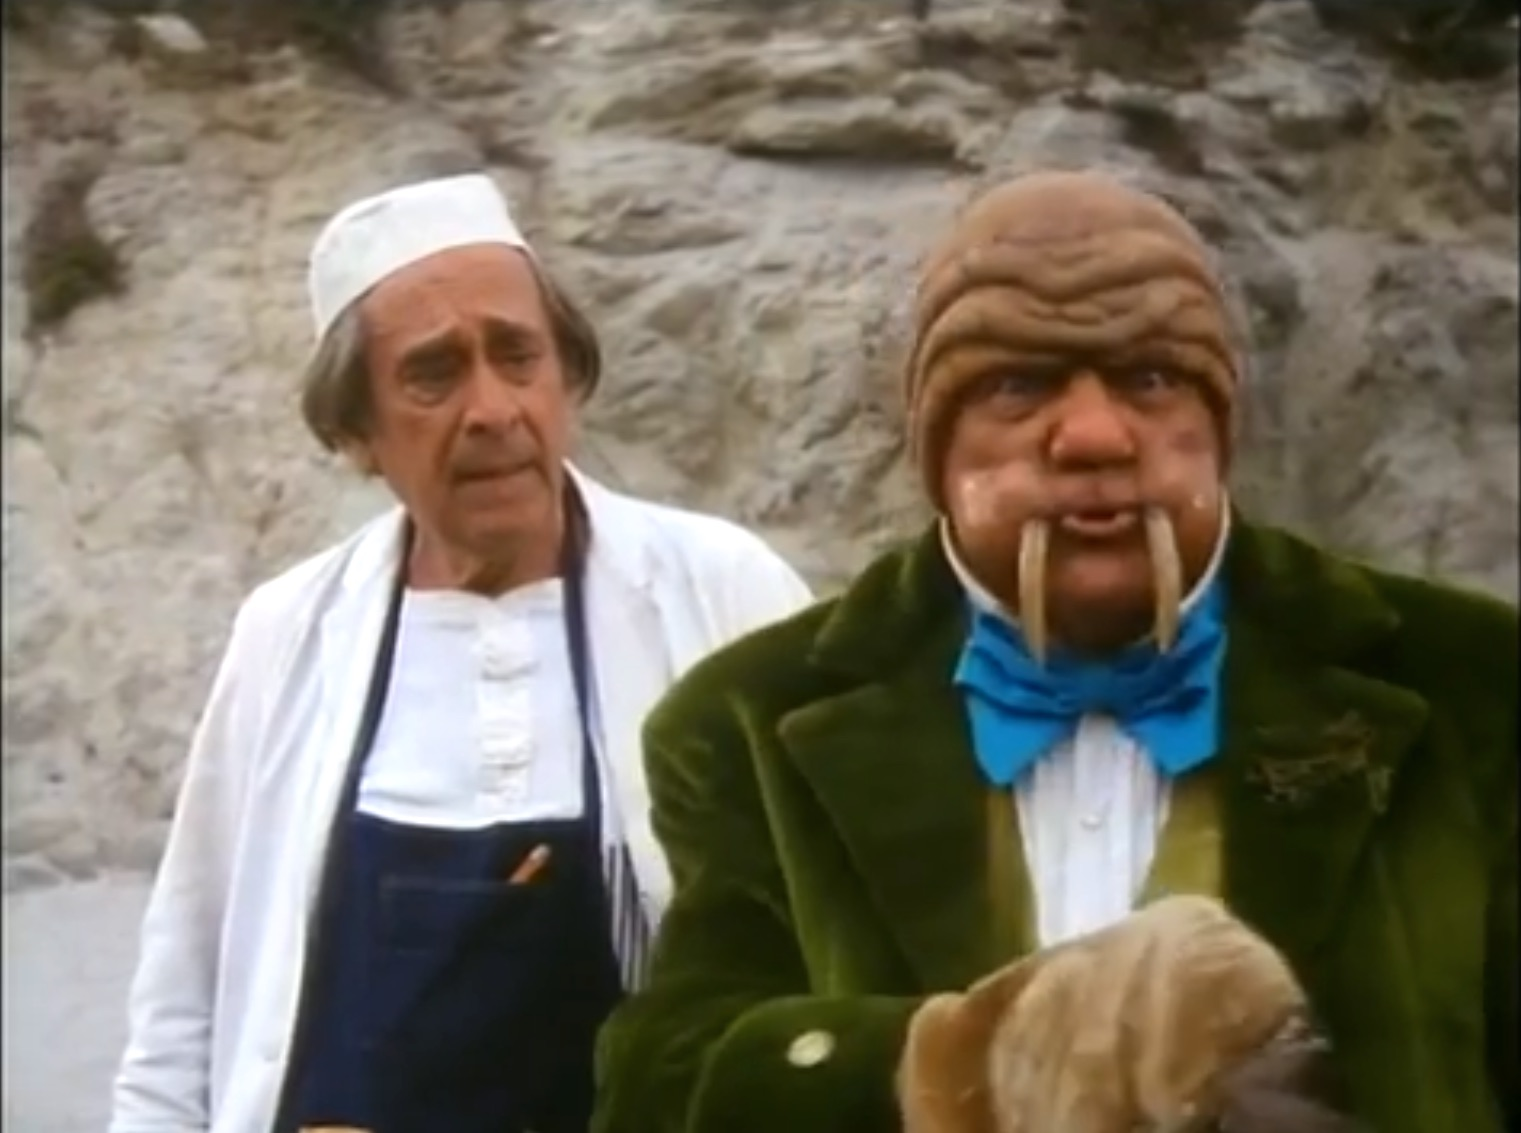 The Walrus and the Carpenter, Music by Steve Allen, Lyrics by Lewis Carroll, Performed by Steve Lawrence, Eydie Gormé,Karl Malden, Louis Nye, and the Oysters in Alice in Wonderland 1985